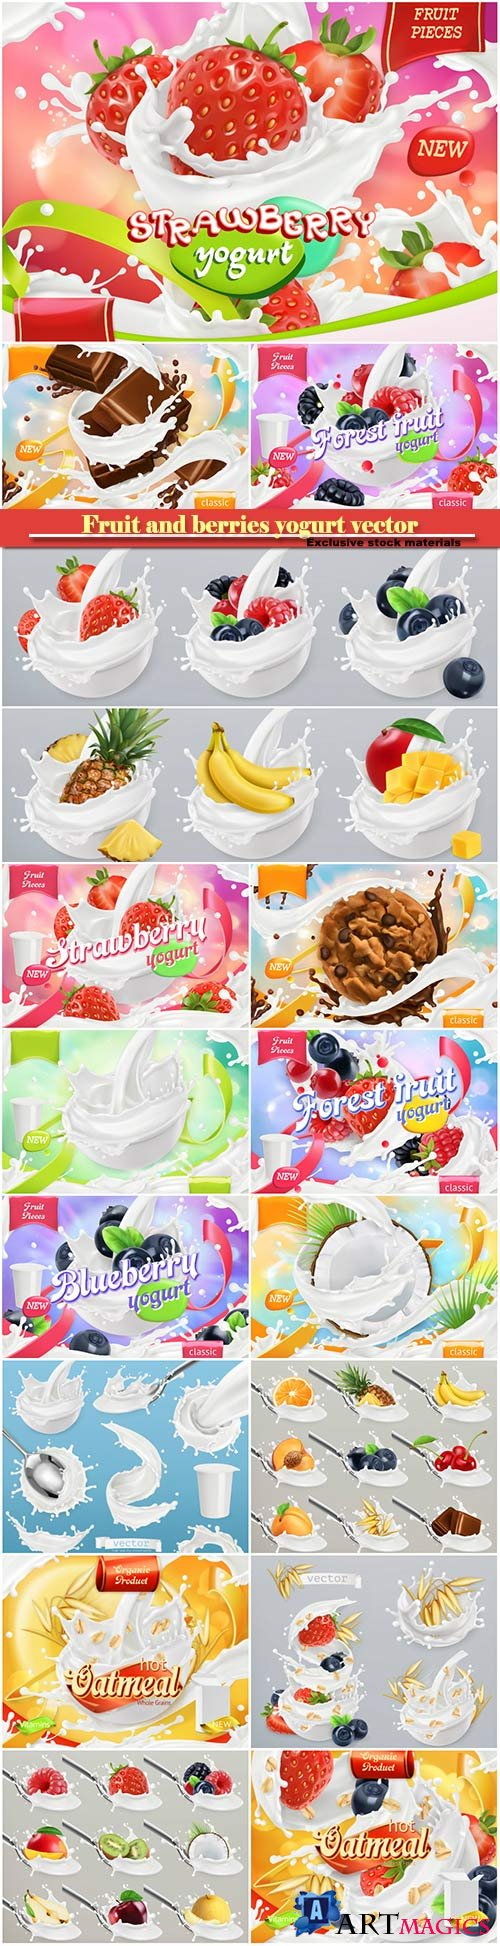 Fruit and berries yogurt vector, mixed berry and milk splashes, chocolate